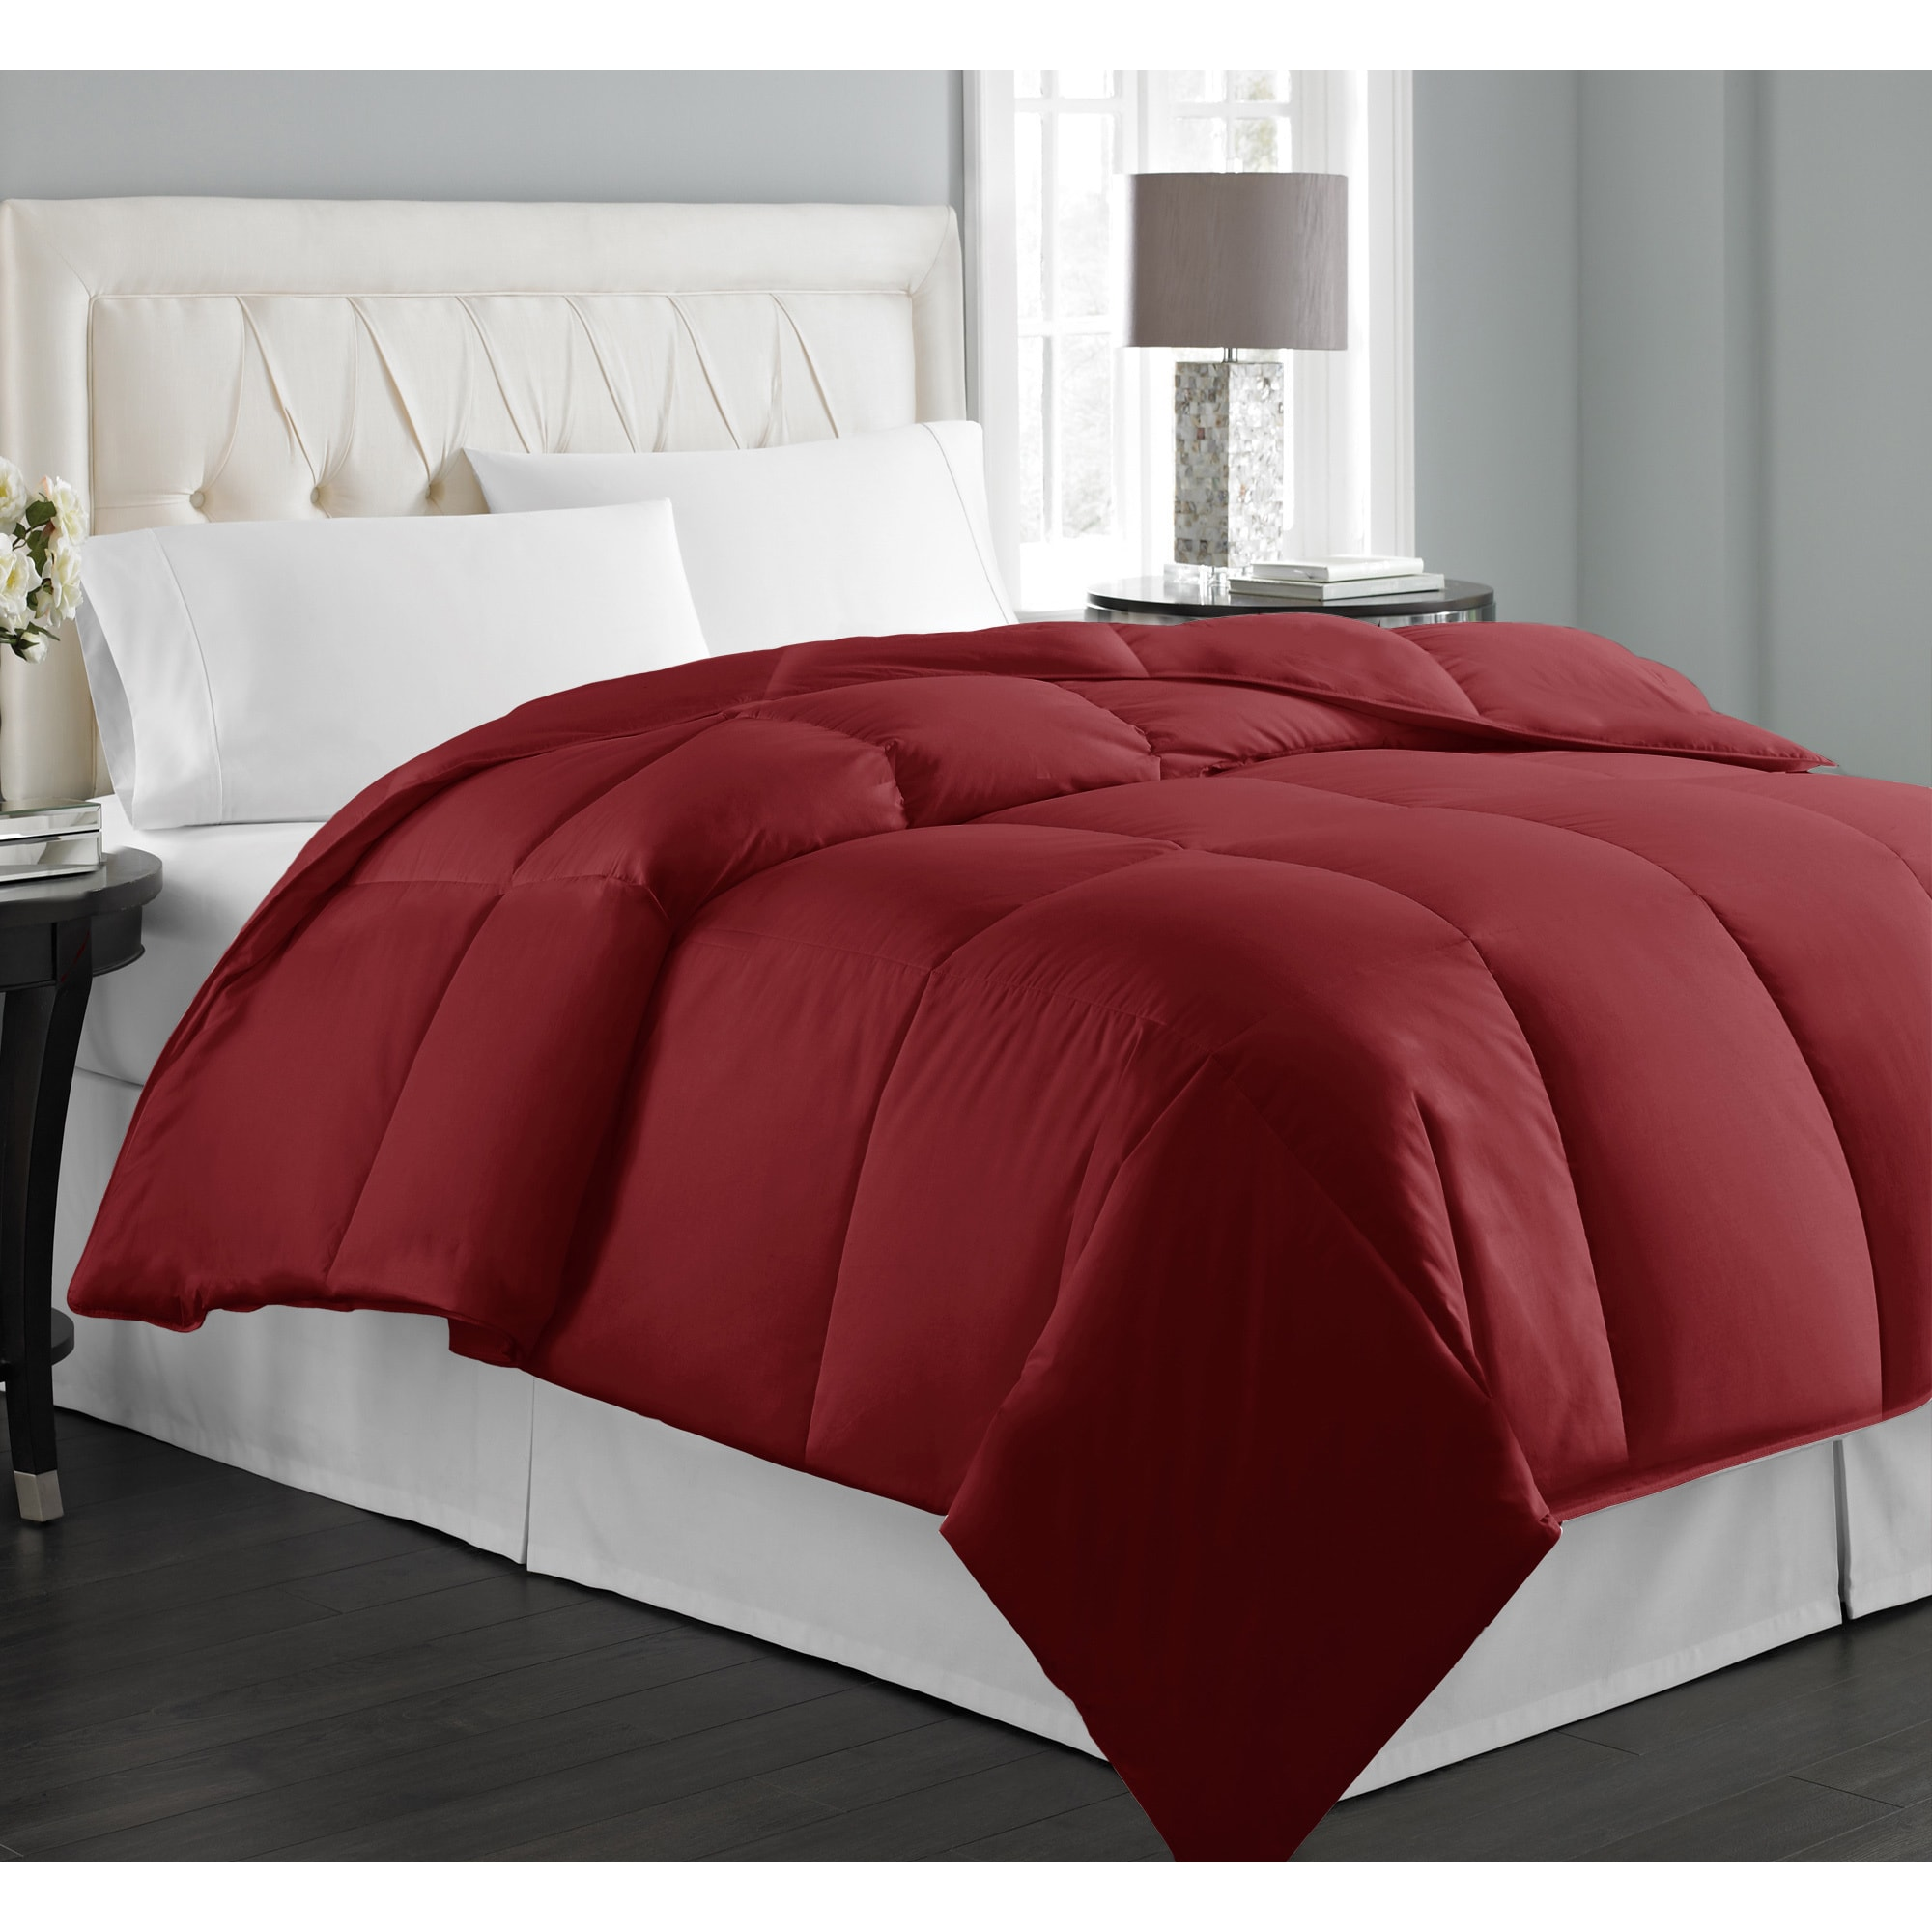 white queen overstock tufted pintuck down alternative bedding all product today comforter shipping bath free season